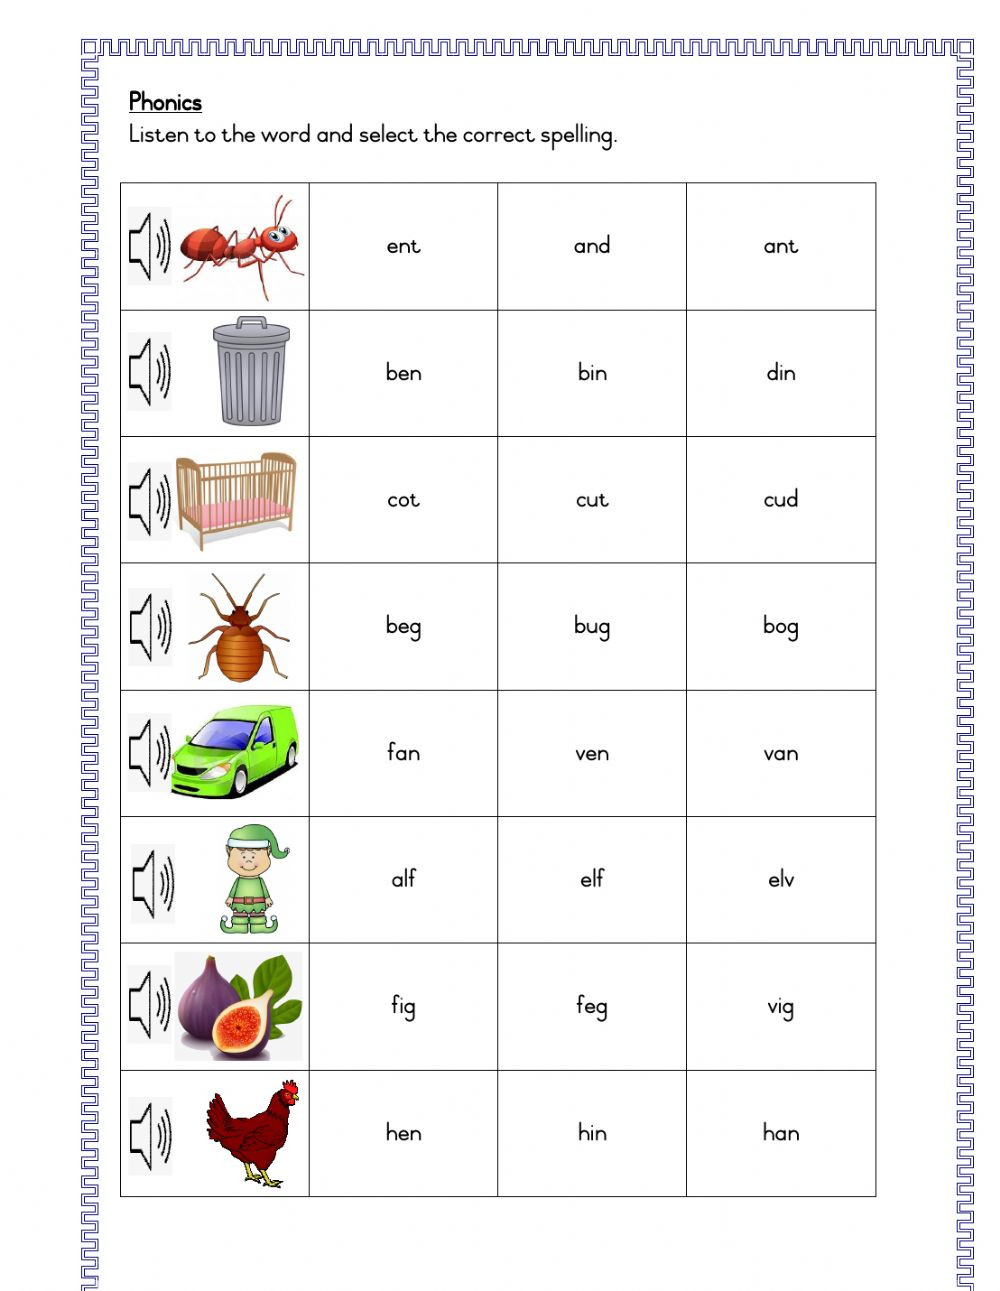 Phonics choose correct spelling 3 letter words yl zs